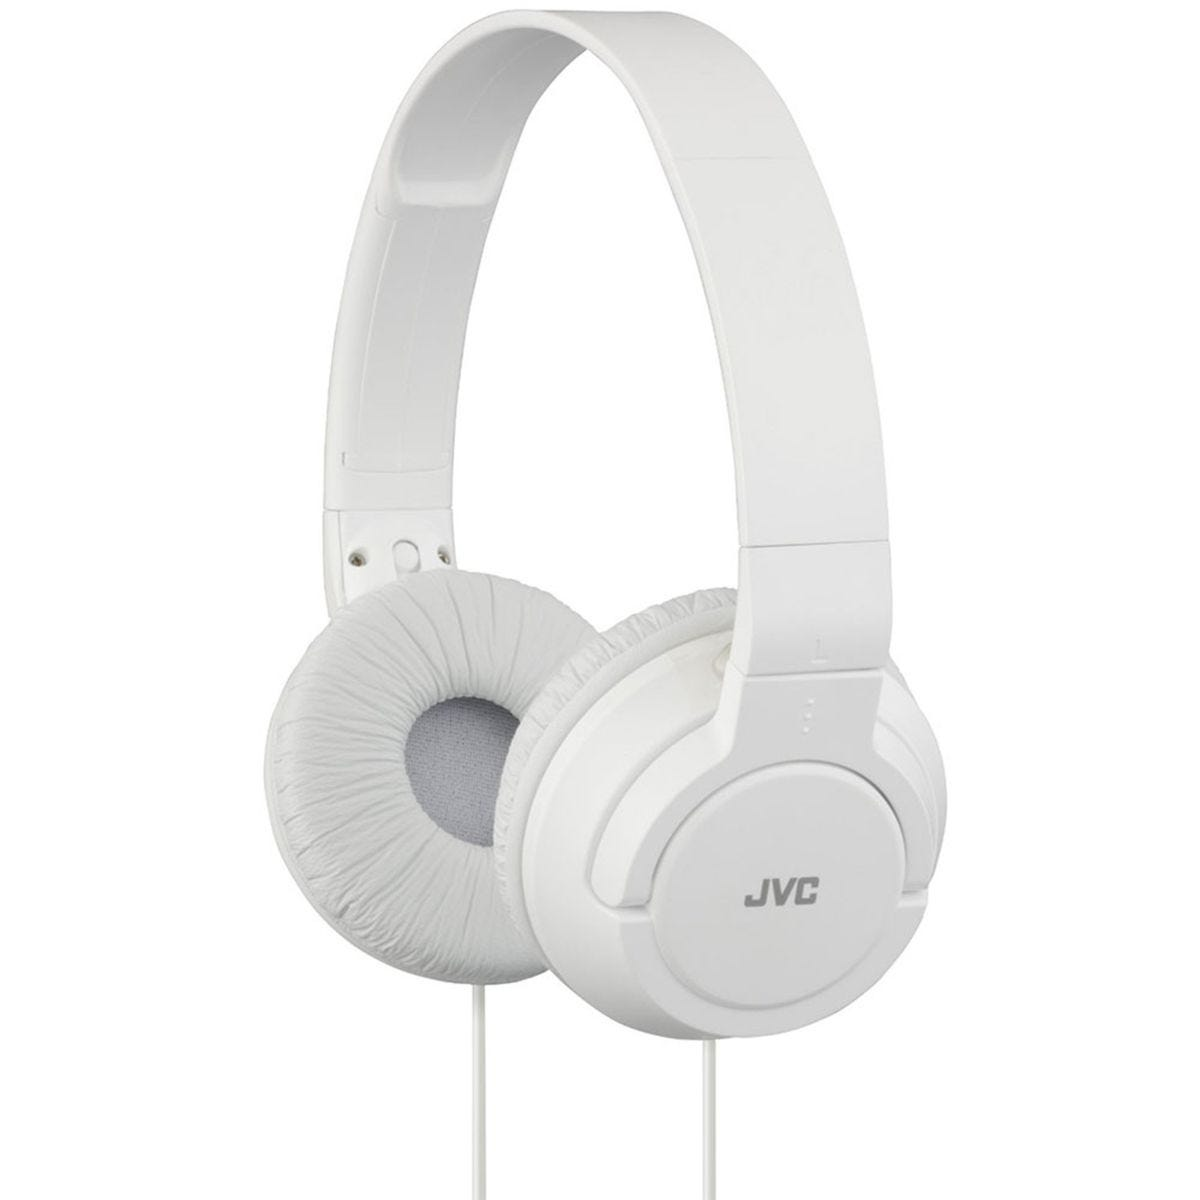 JVC Powerful Bass Headphones - White